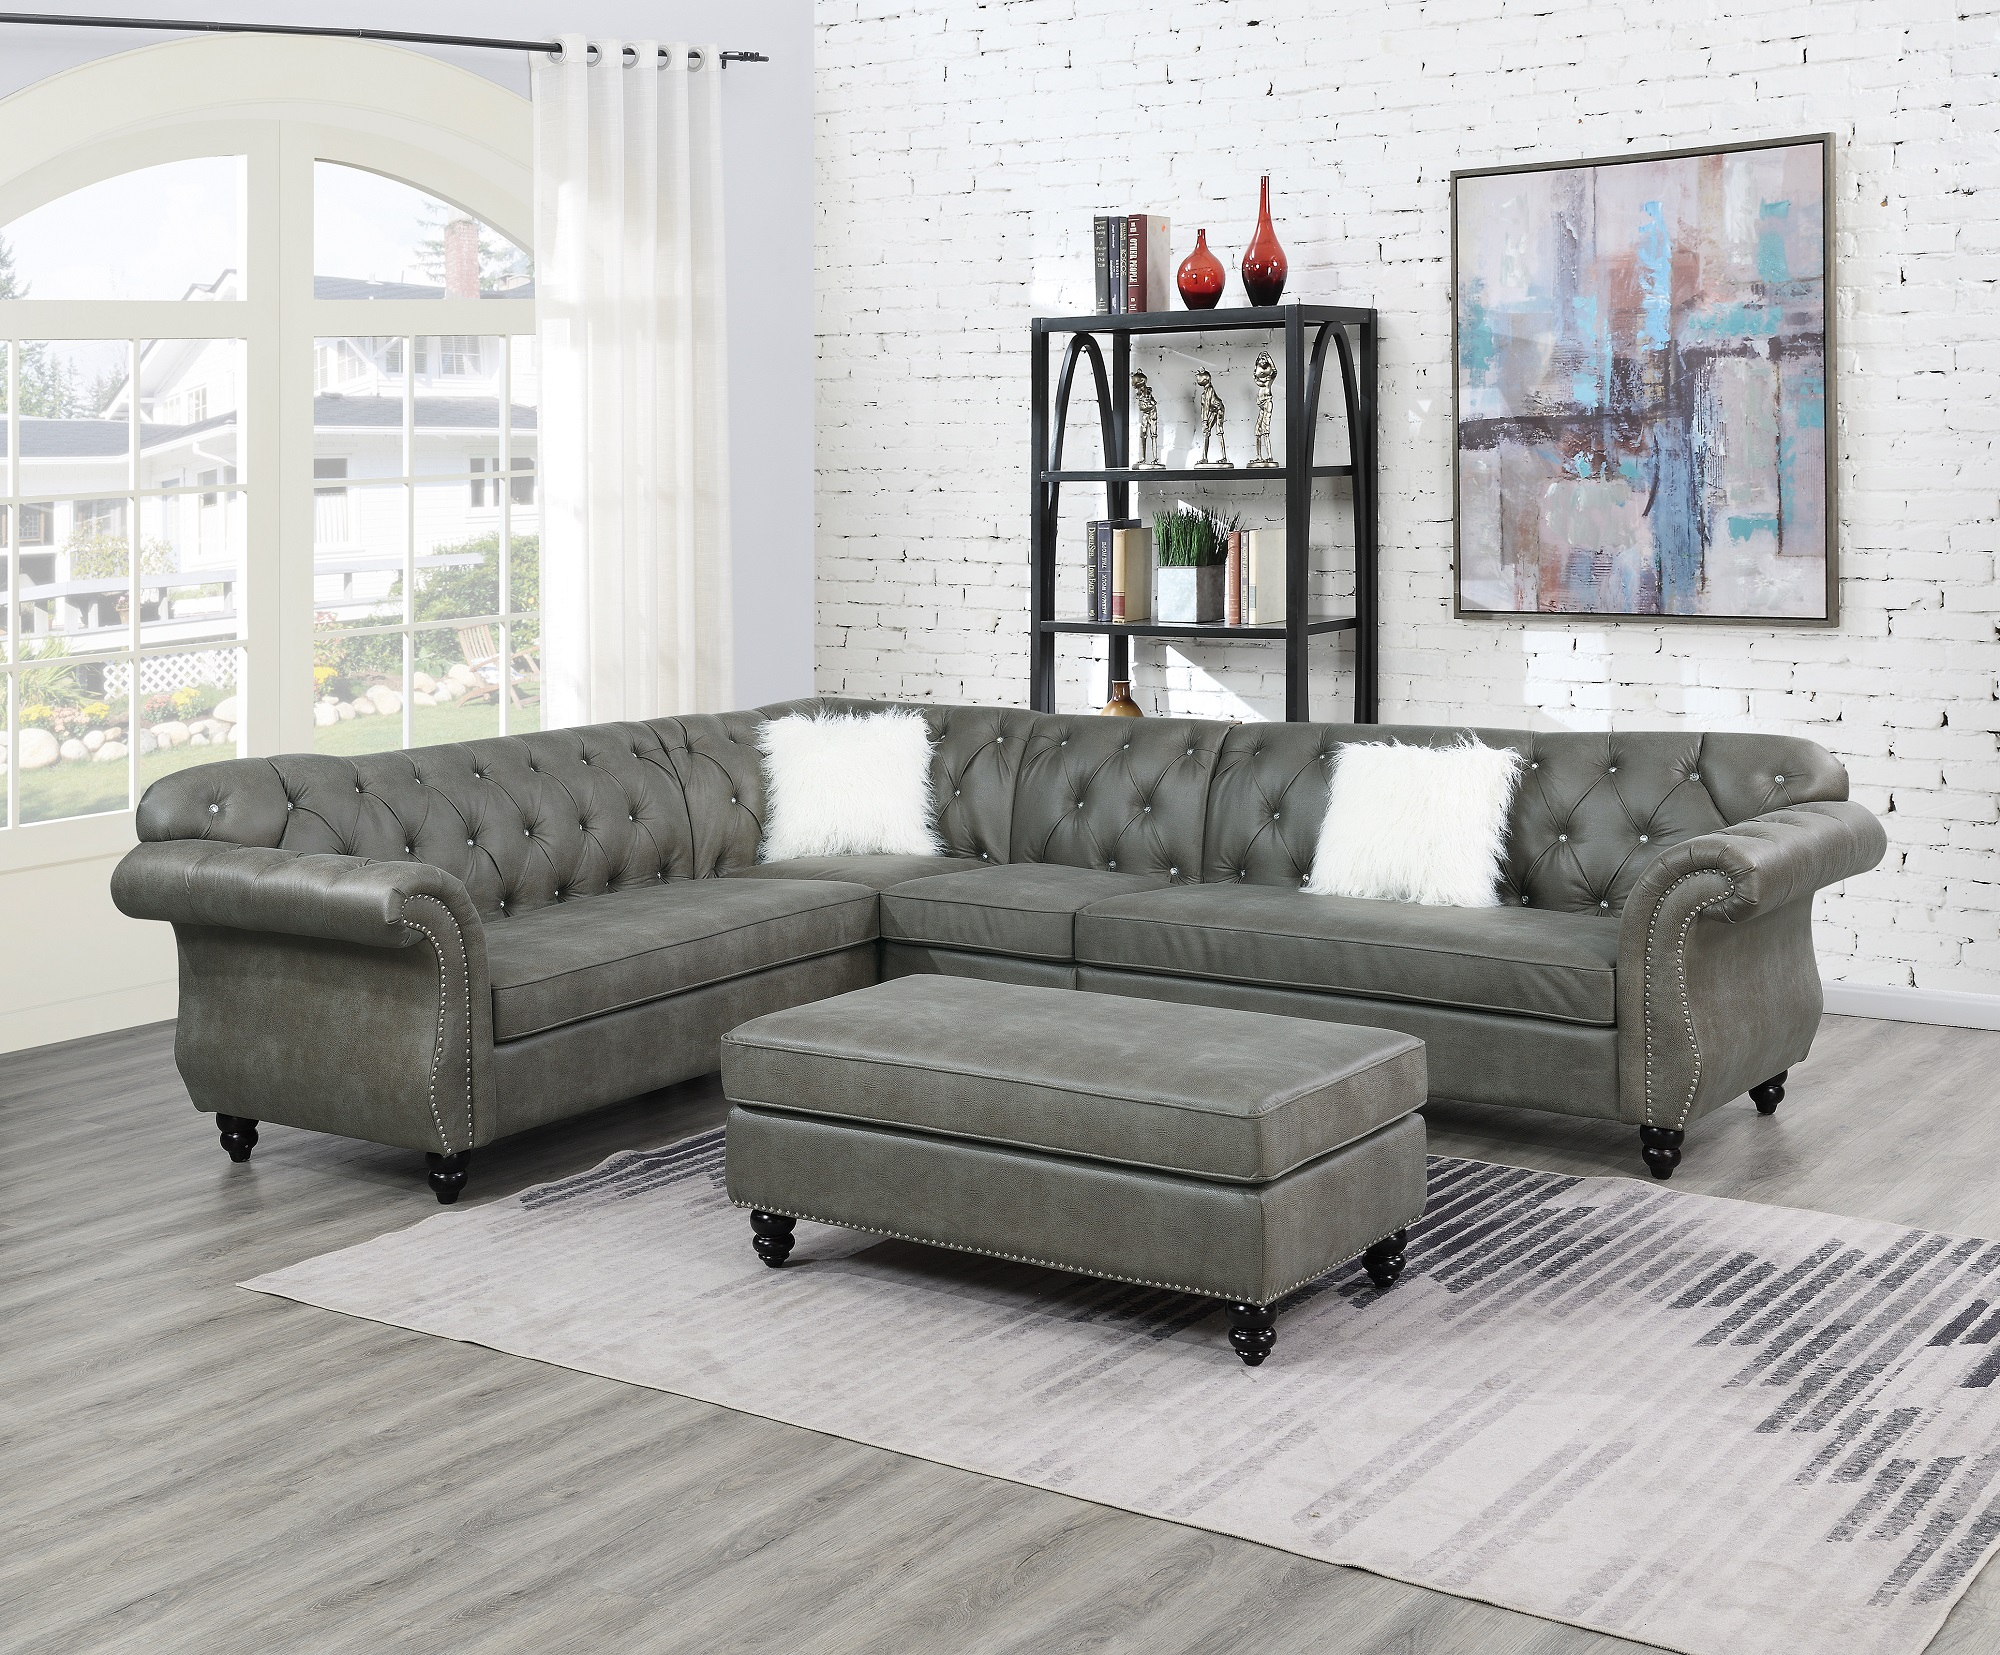 Contemporary Modern Living Room Sectional Sofa Set Slate Pertaining To 4Pc Beckett Contemporary Sectional Sofas And Ottoman Sets (View 2 of 15)